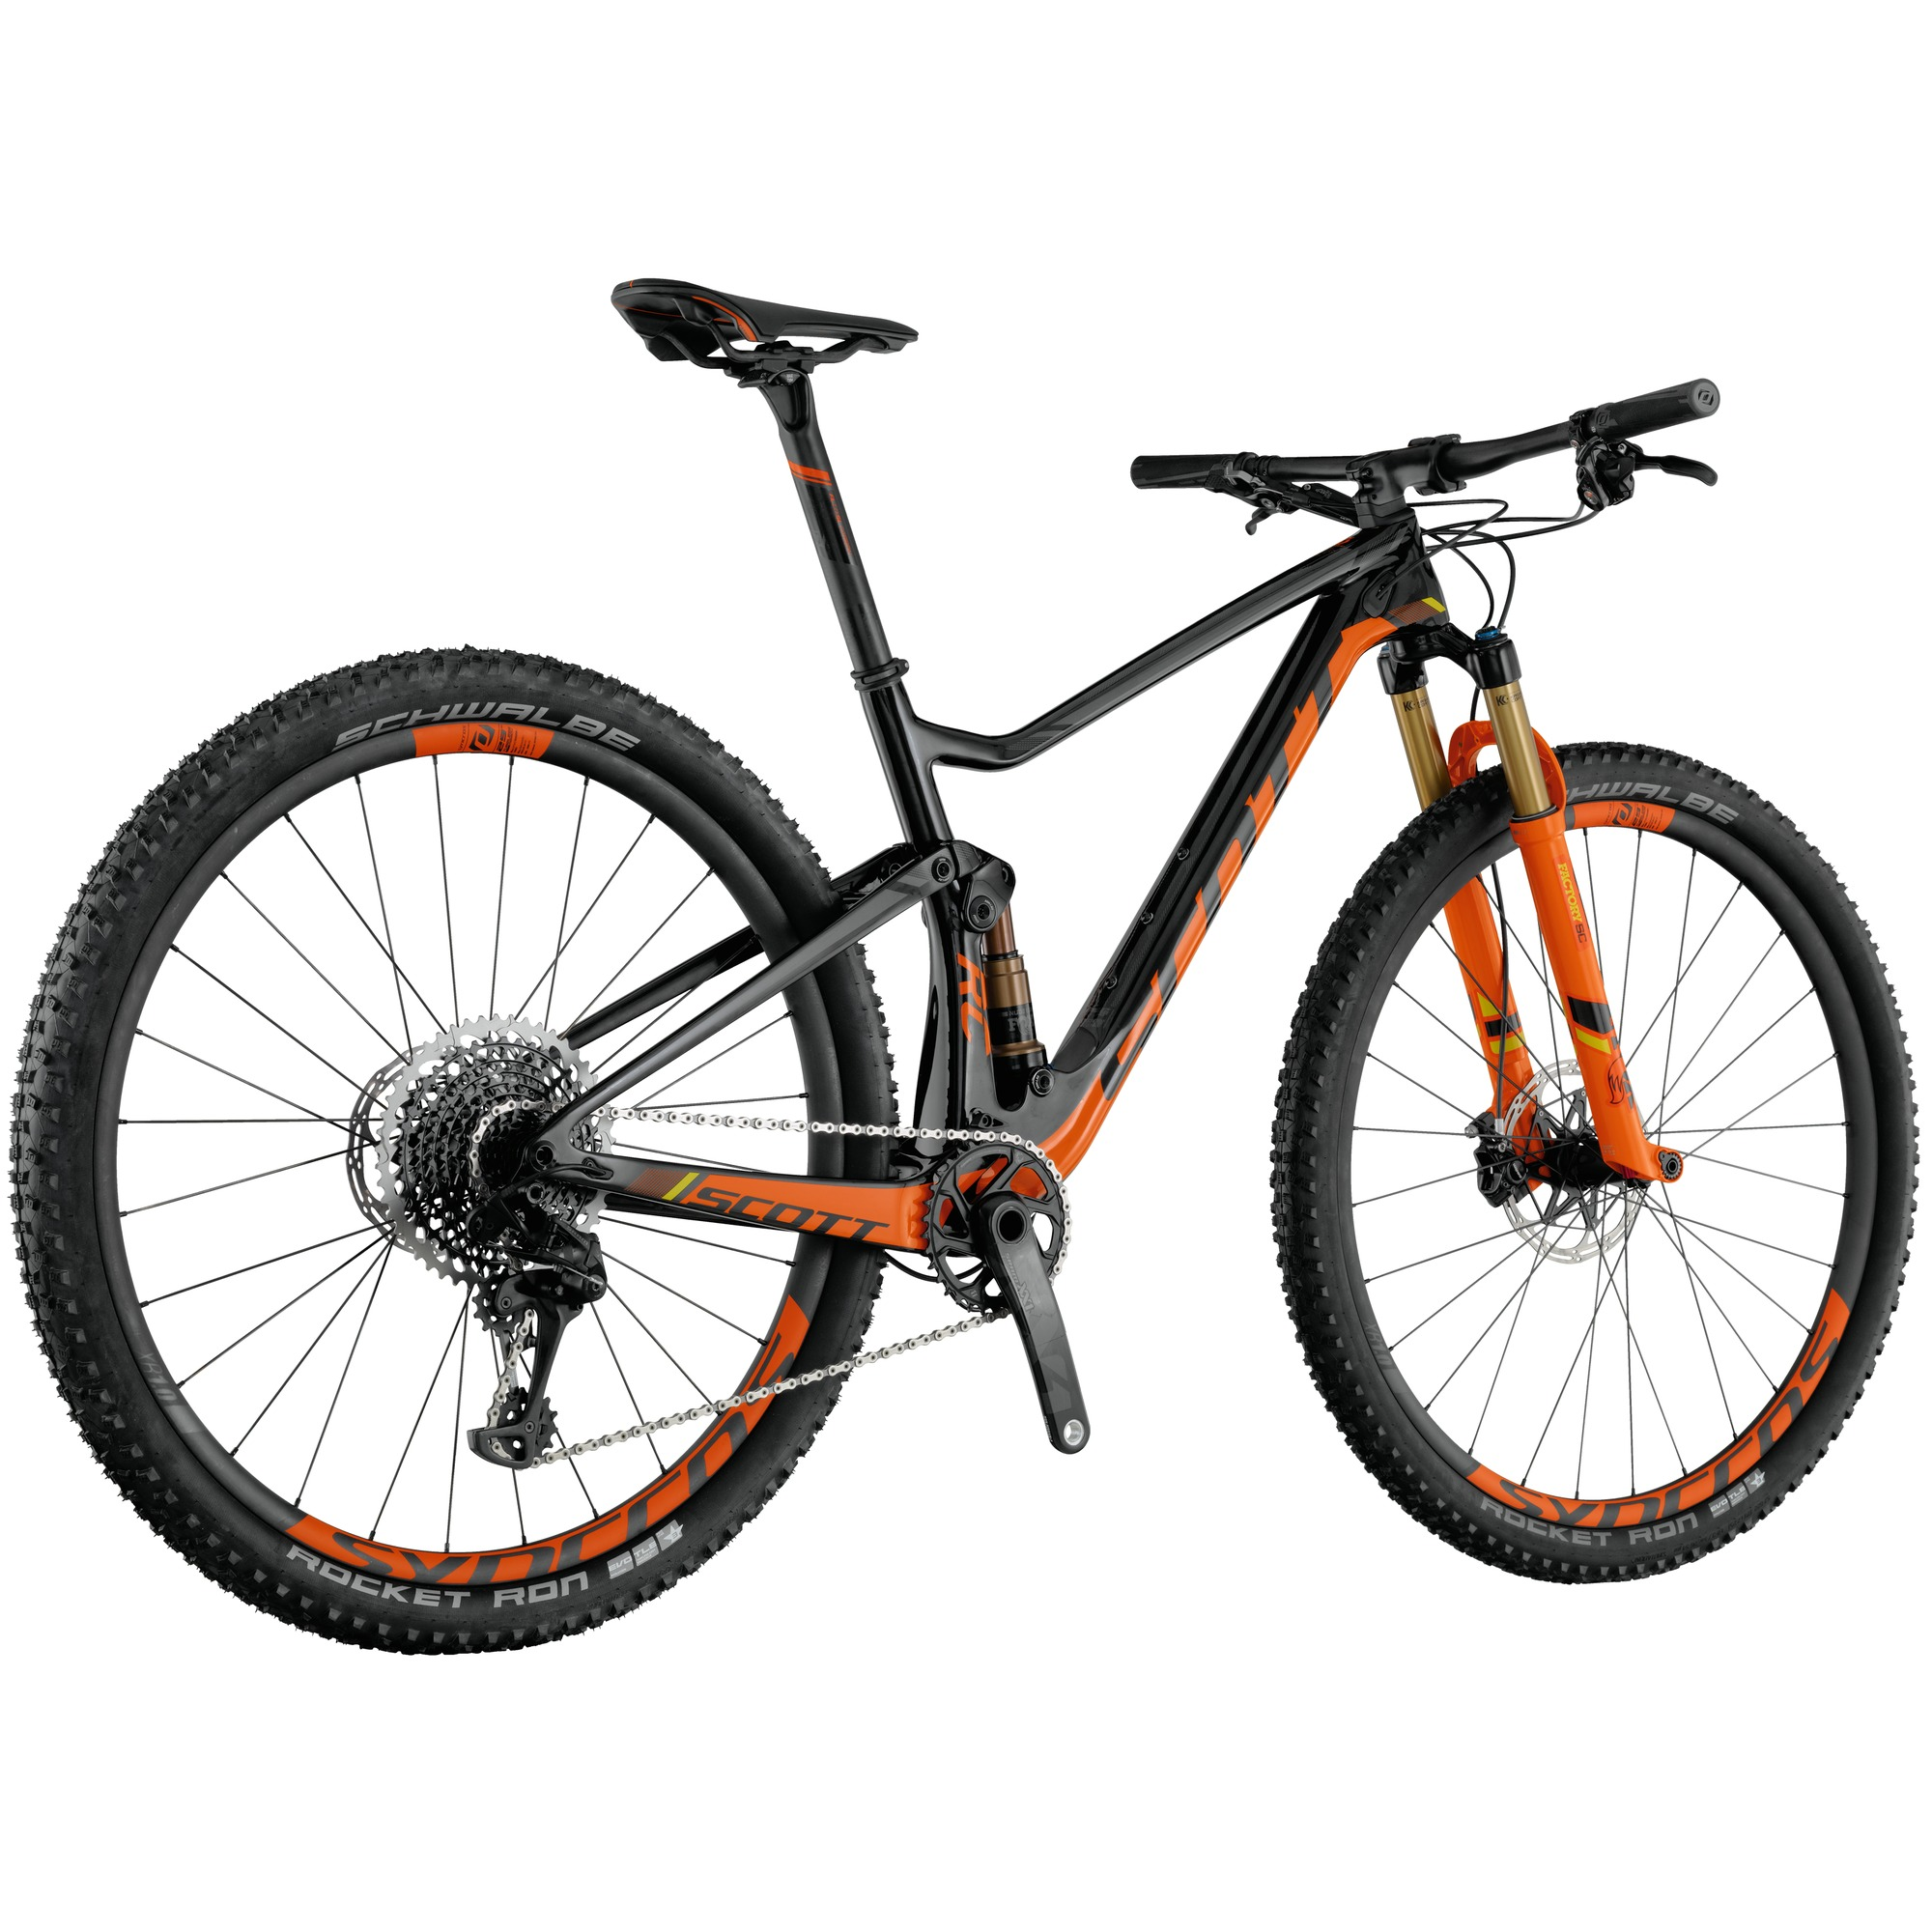 SCOTT Spark RC 900 SL Bike